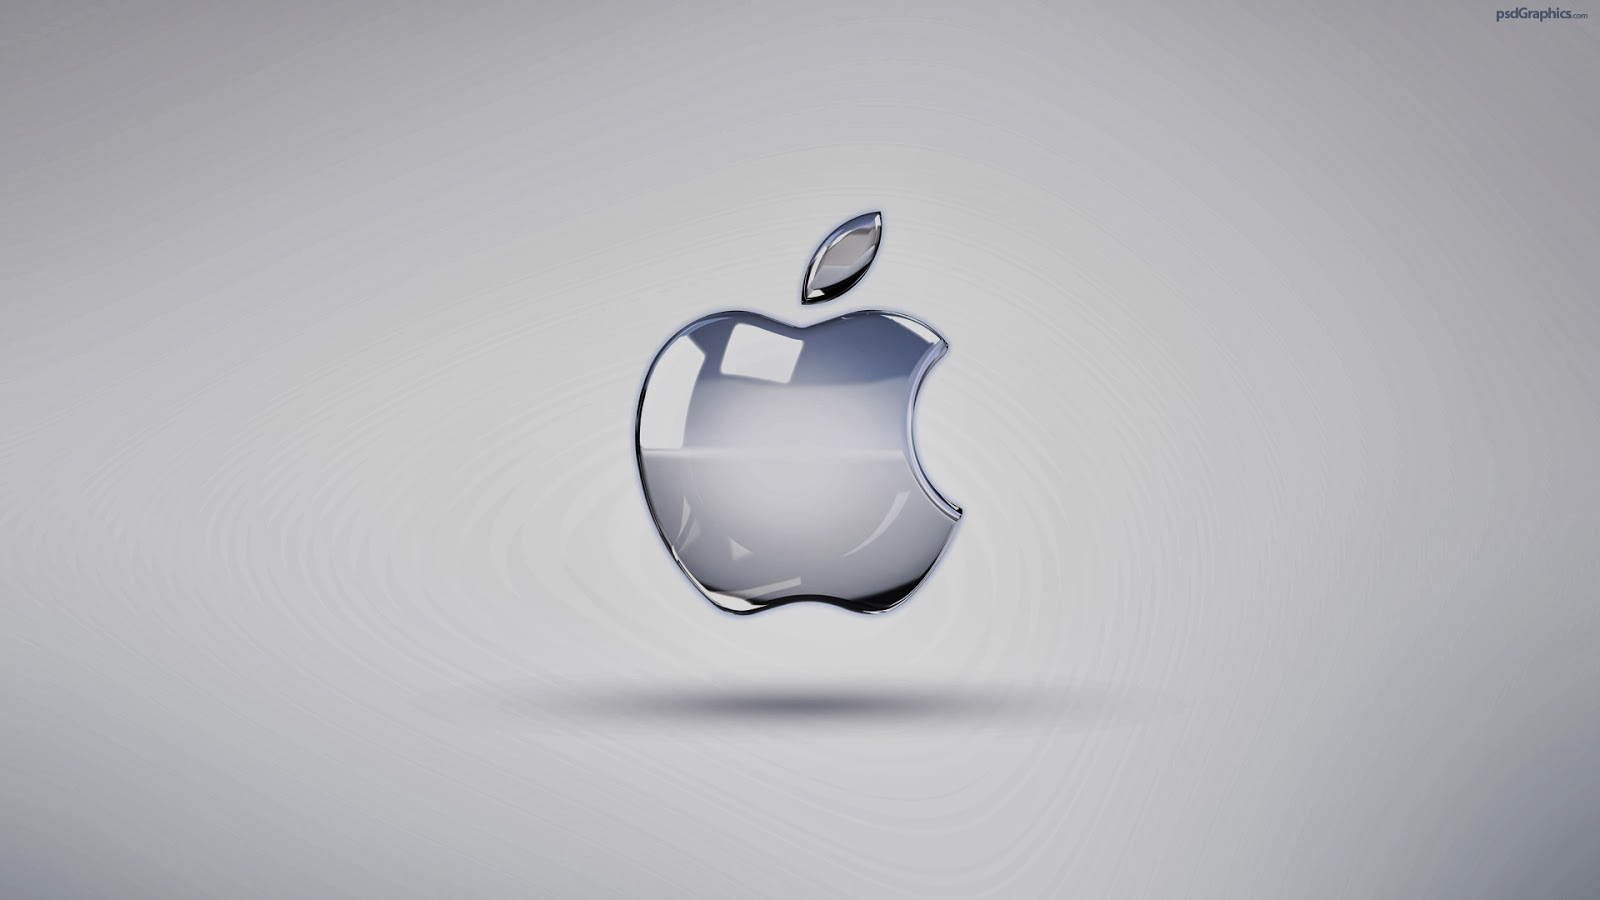 hd wallpapers 1080p apple nice pics gallery